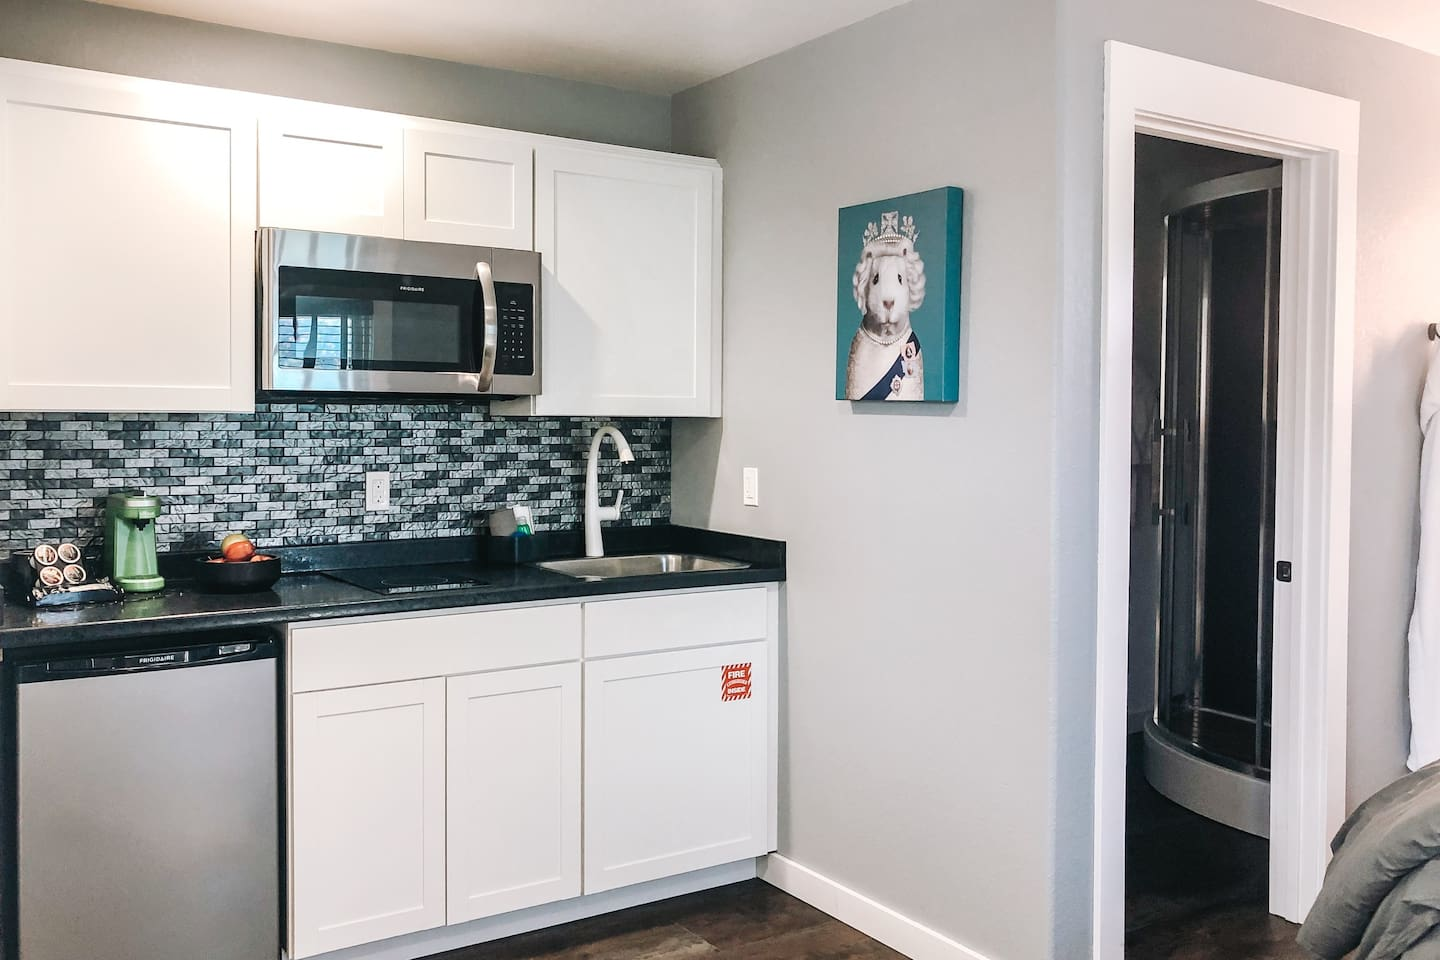 Bungalow 6 has a kitchenette stocked with everything needed to prepare a meal inside or out.